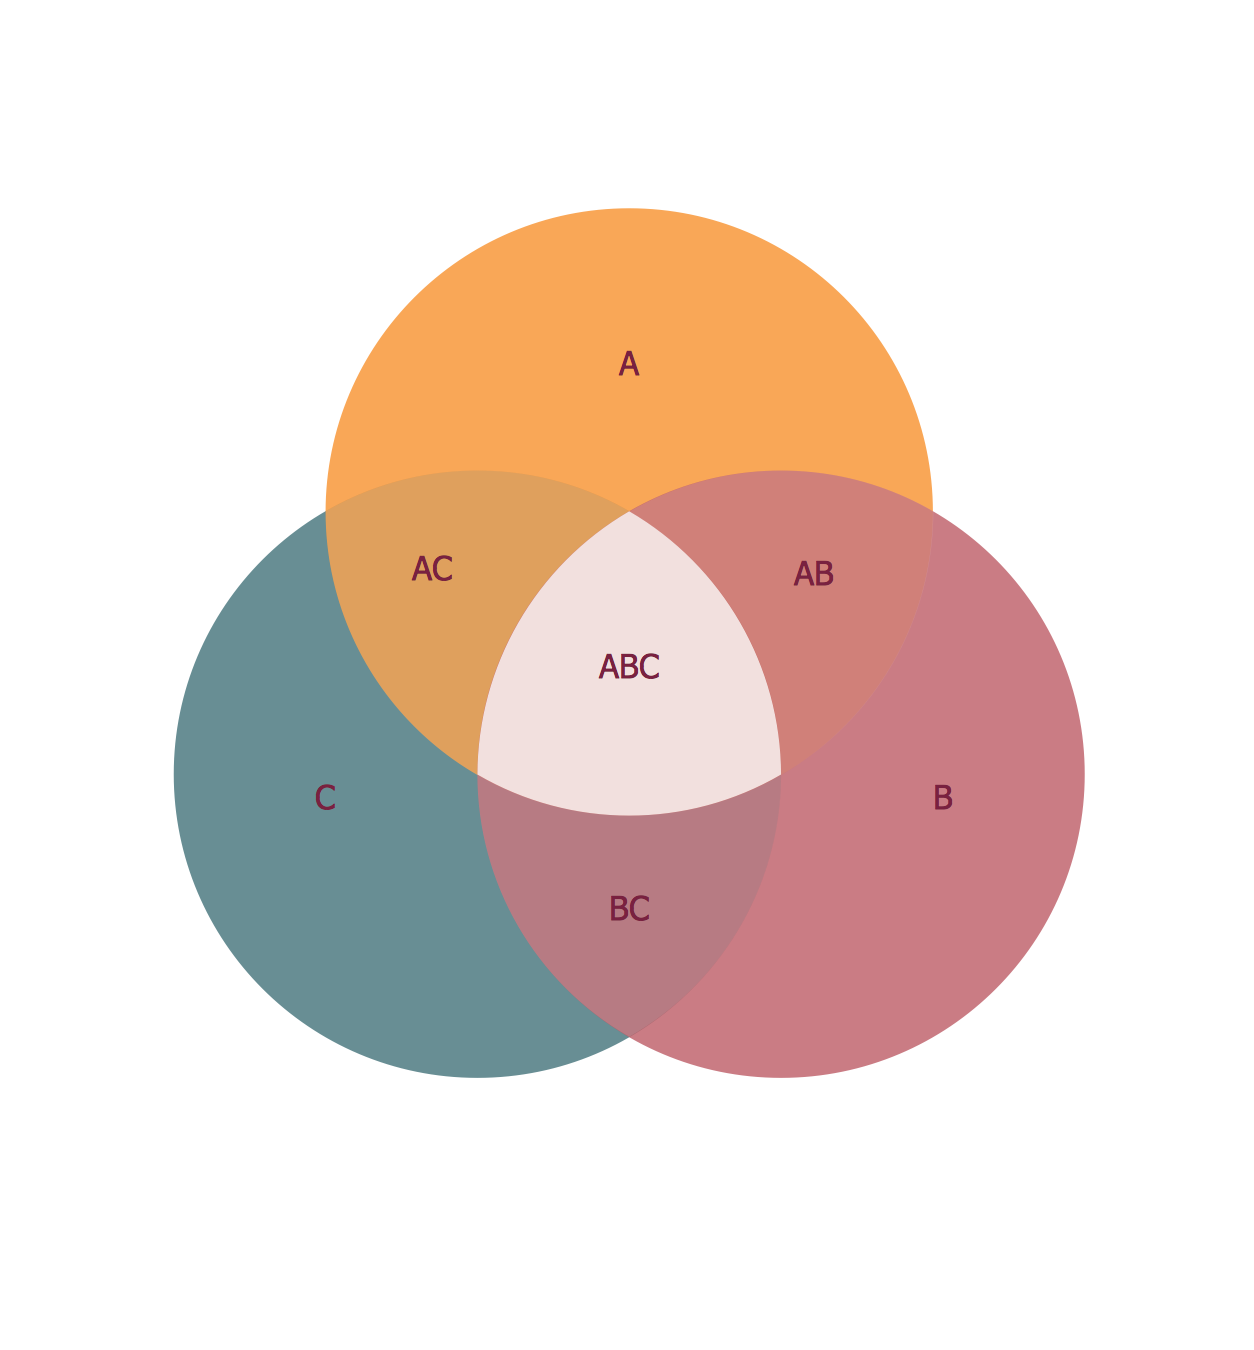 circle spoke diagram template    circle venn diagram  venn    venn diagram example   circle venn